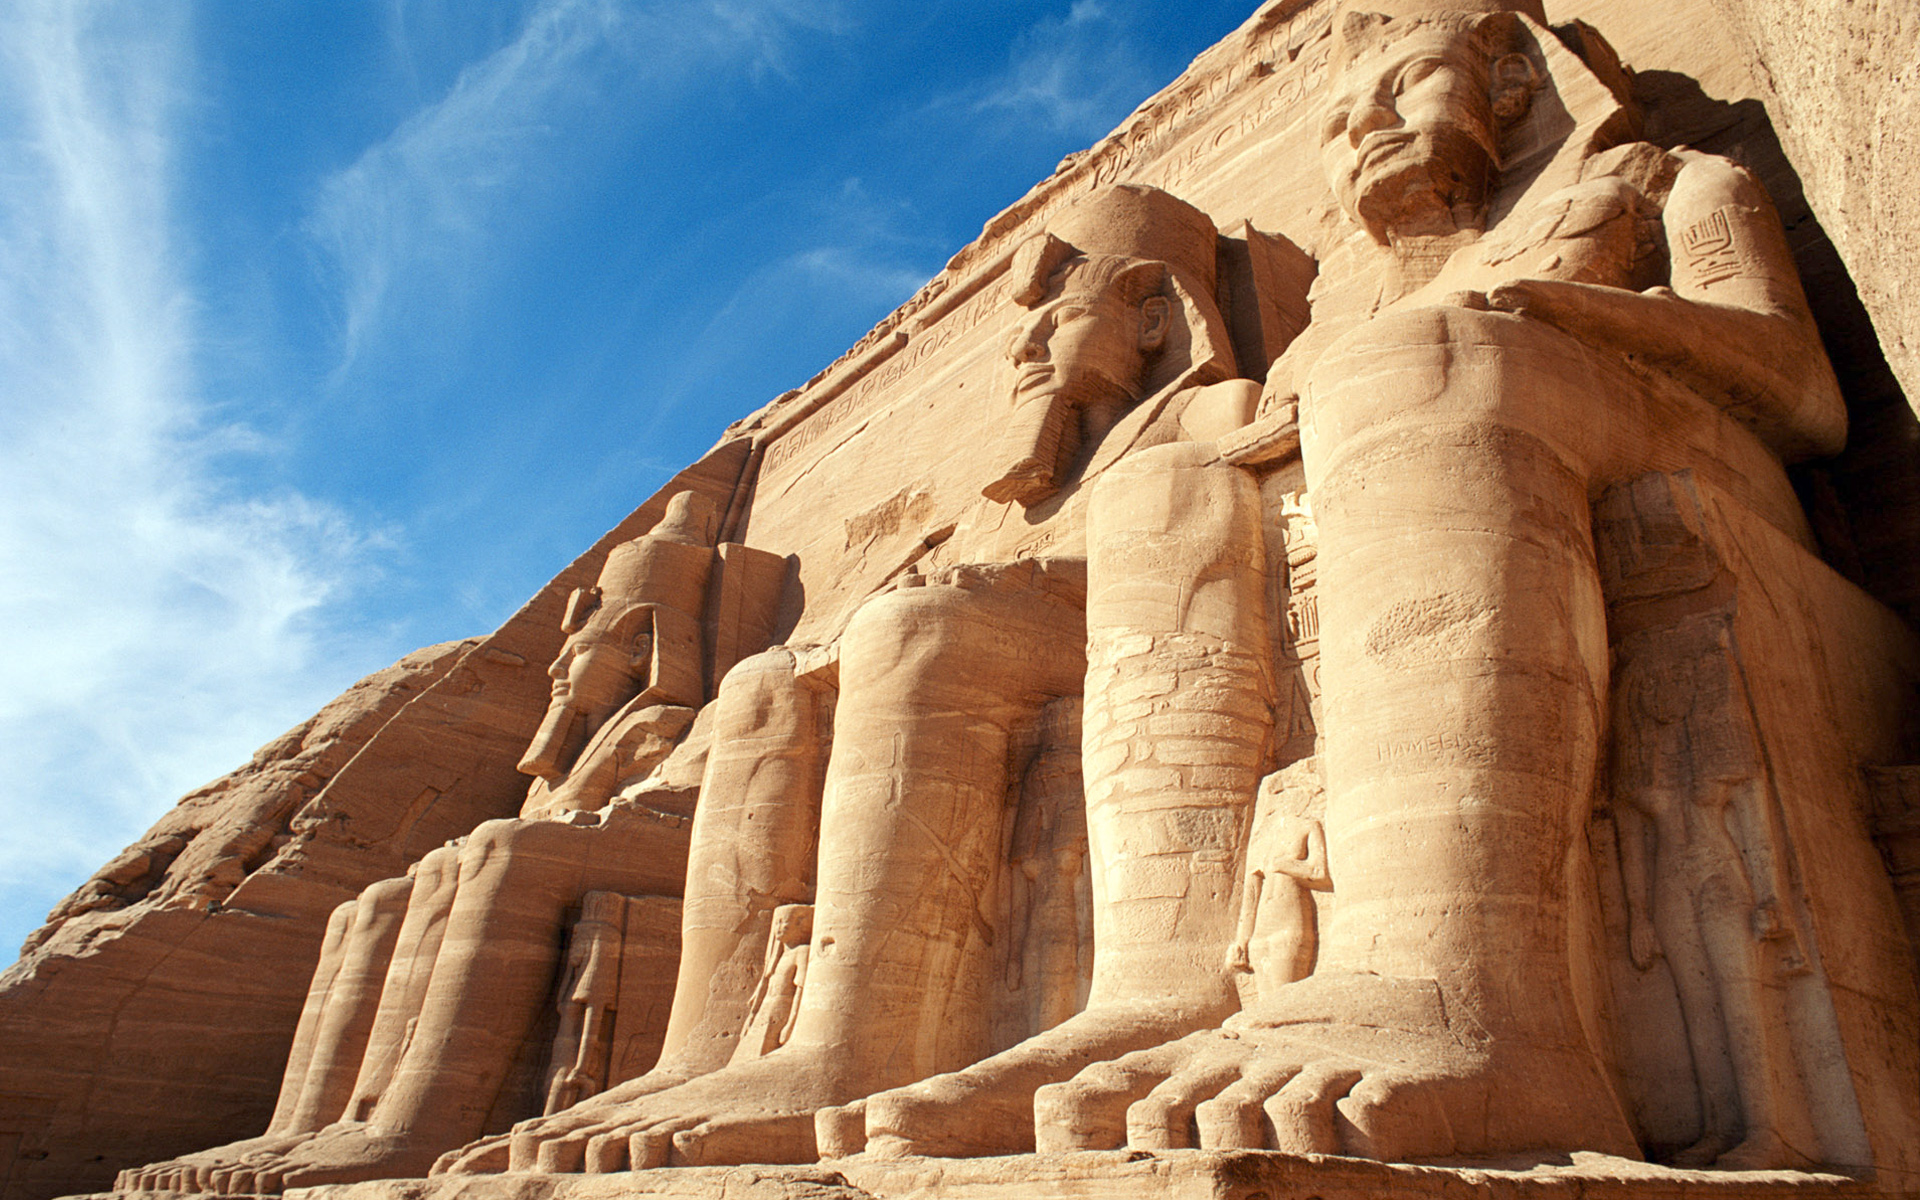 38 Full HD Egypt Wallpapers For Download